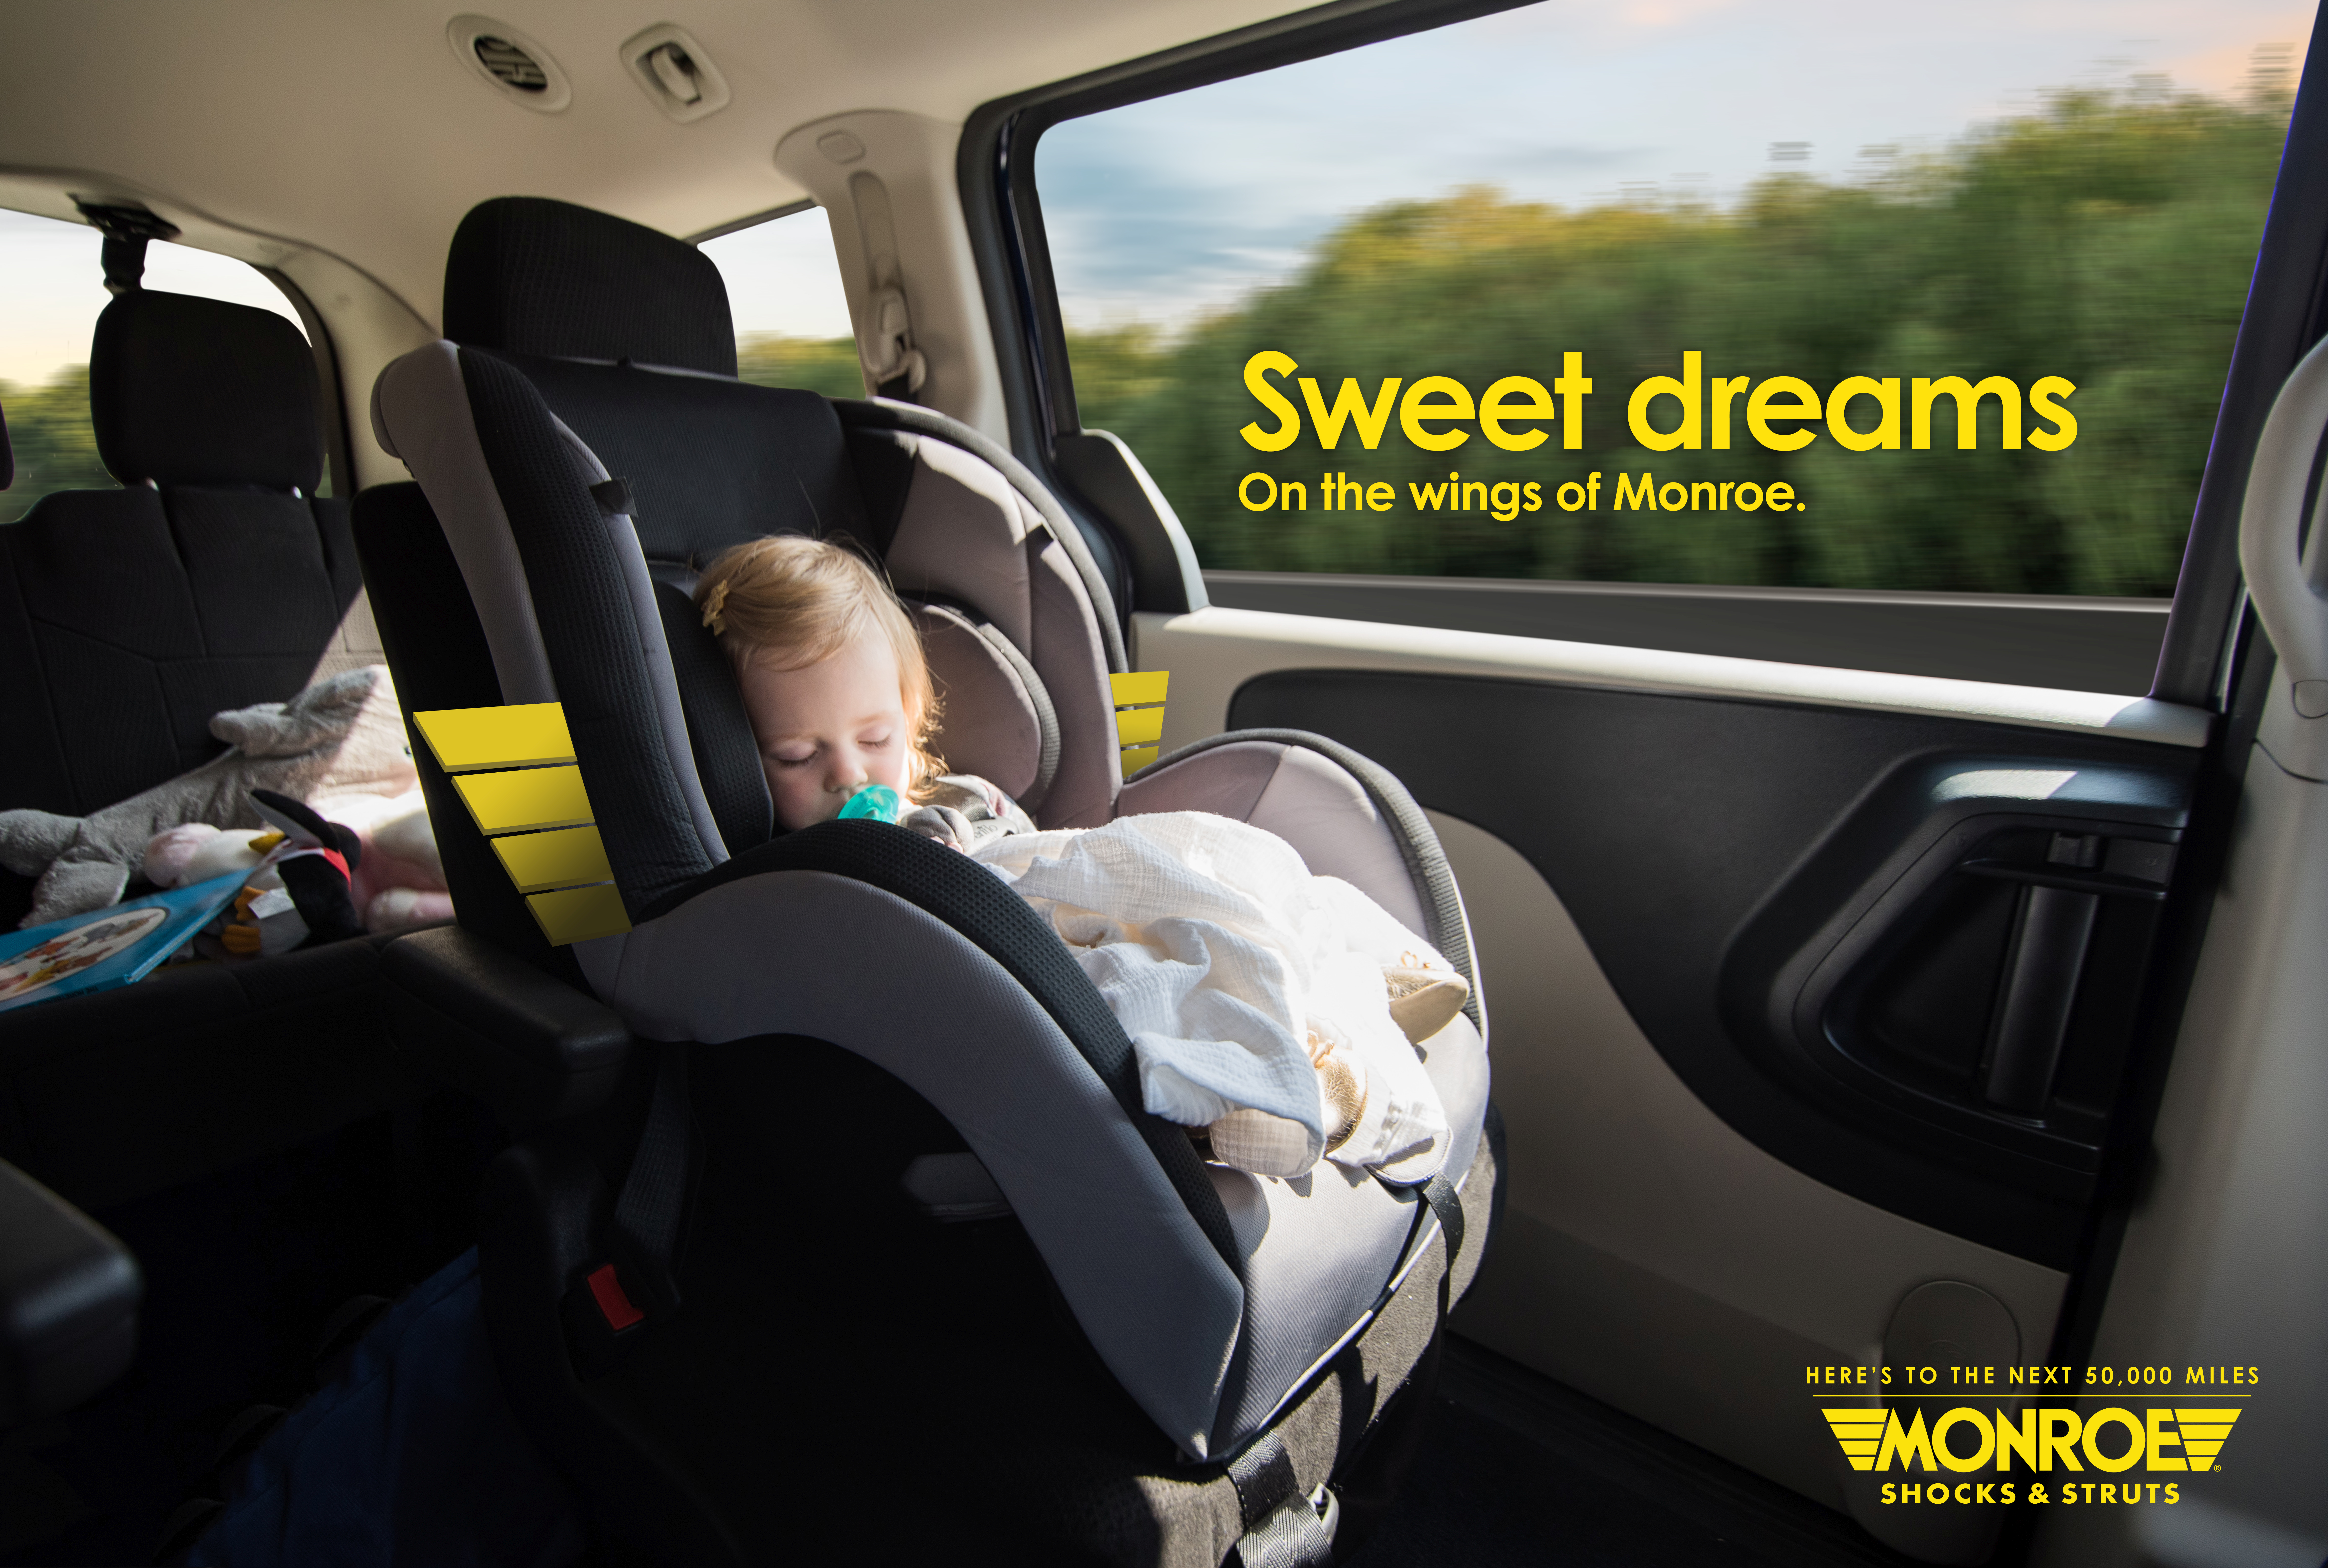 Tenneco Says Ride on the 'Wings of Monroe' in New Campaign